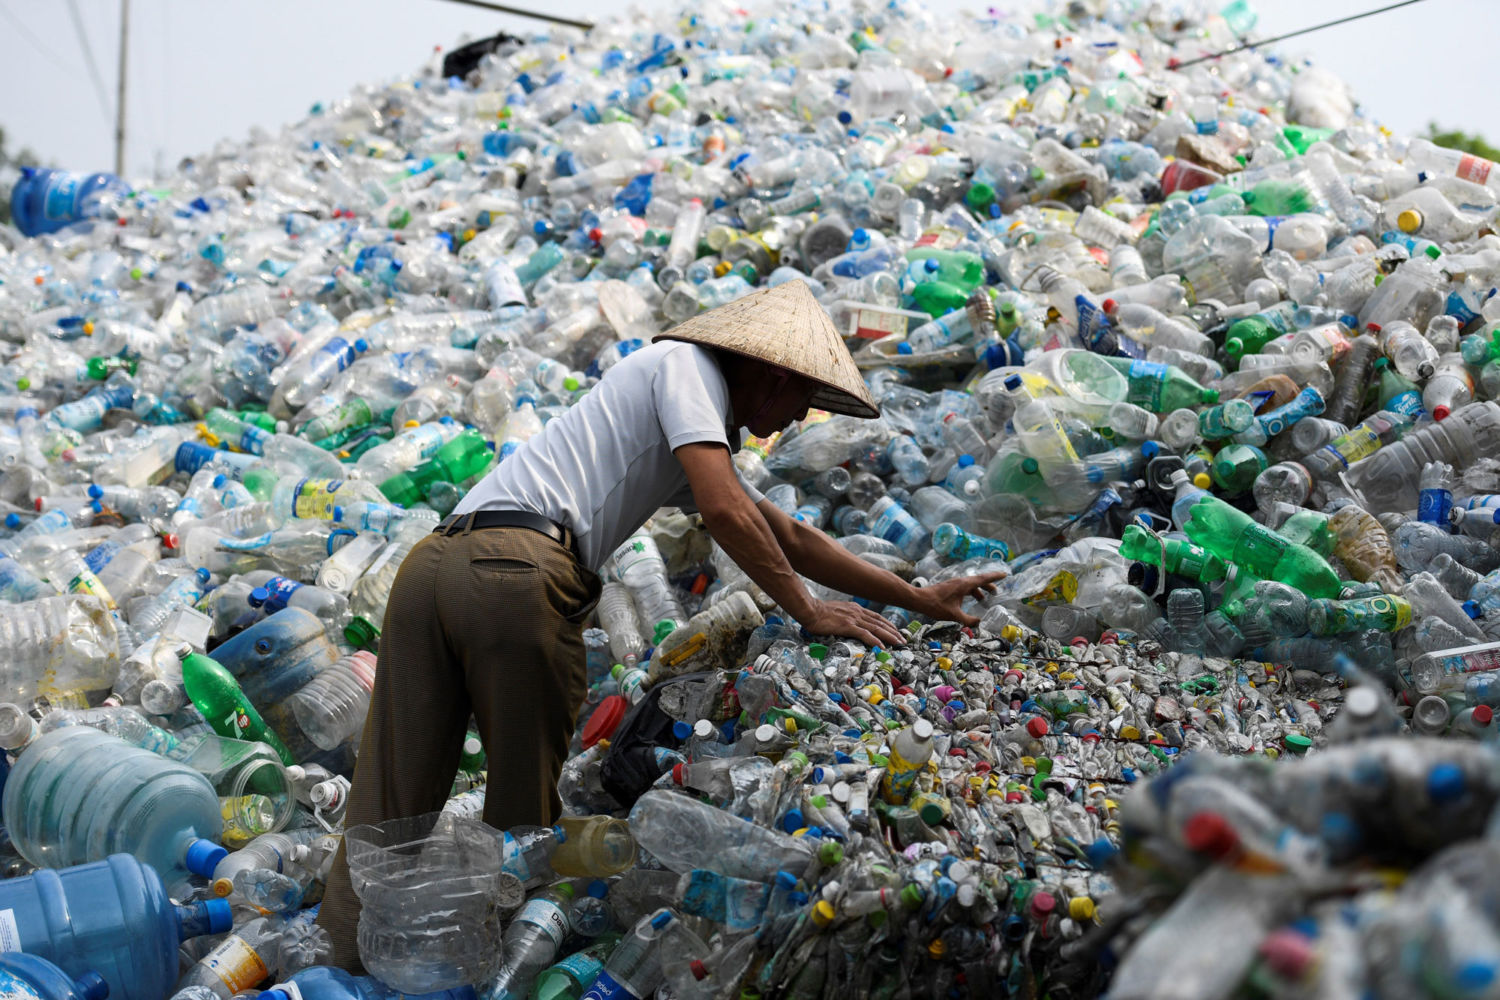 Piling Up How China S Ban On Importing Waste Has Stalled Global Recycling Yale E360